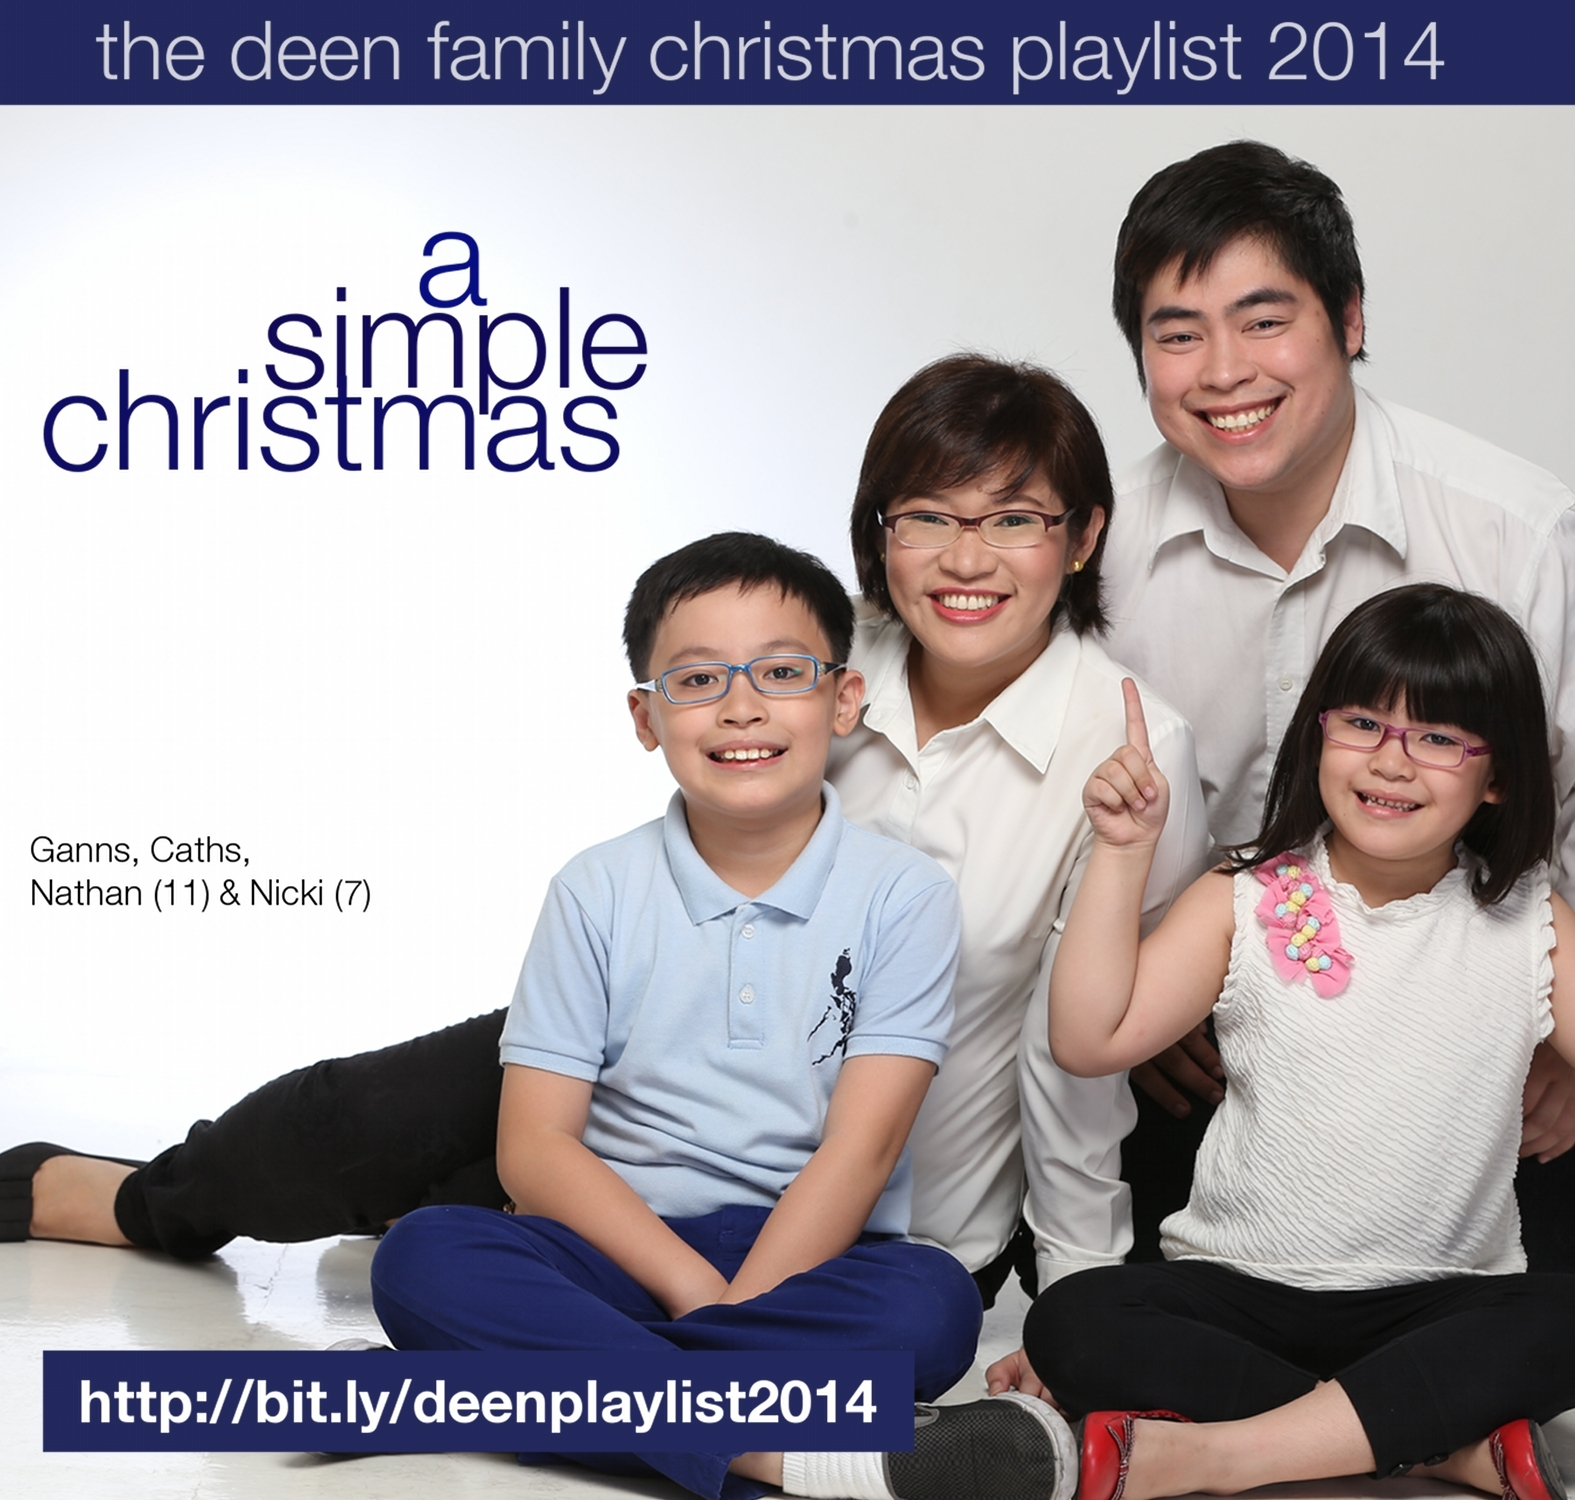 christmasplaylist-2014